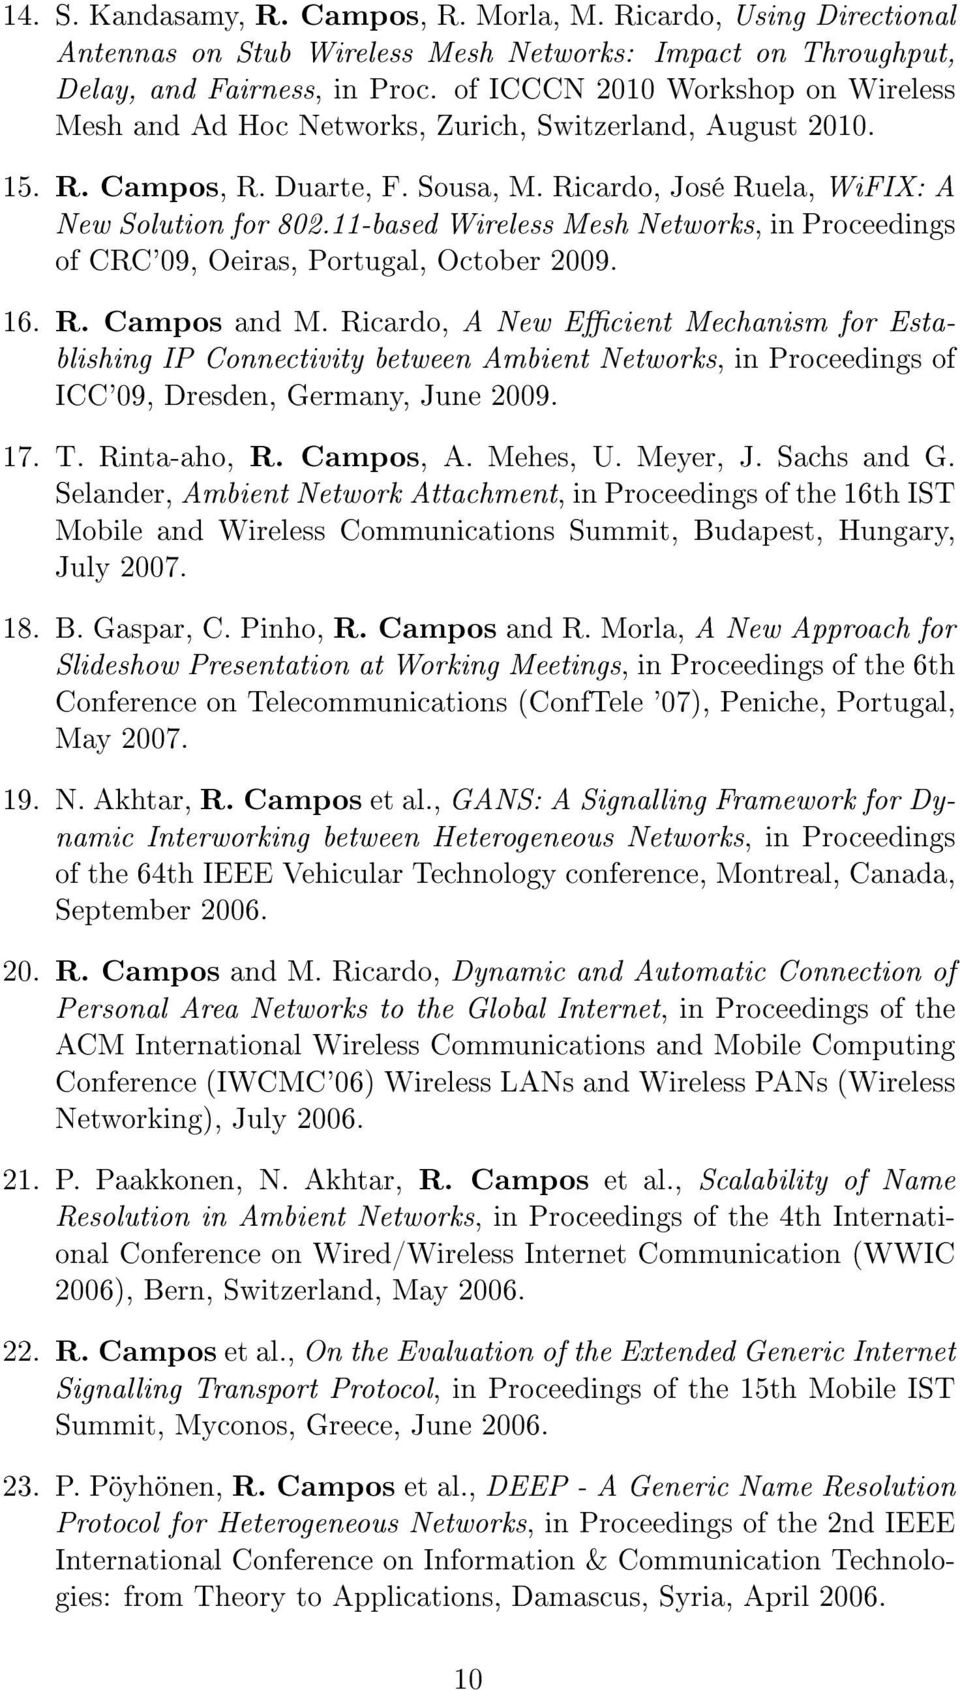 11-based Wireless Mesh Networks, in Proceedings of CRC'09, Oeiras, Portugal, October 2009. 16. R. Campos and M.